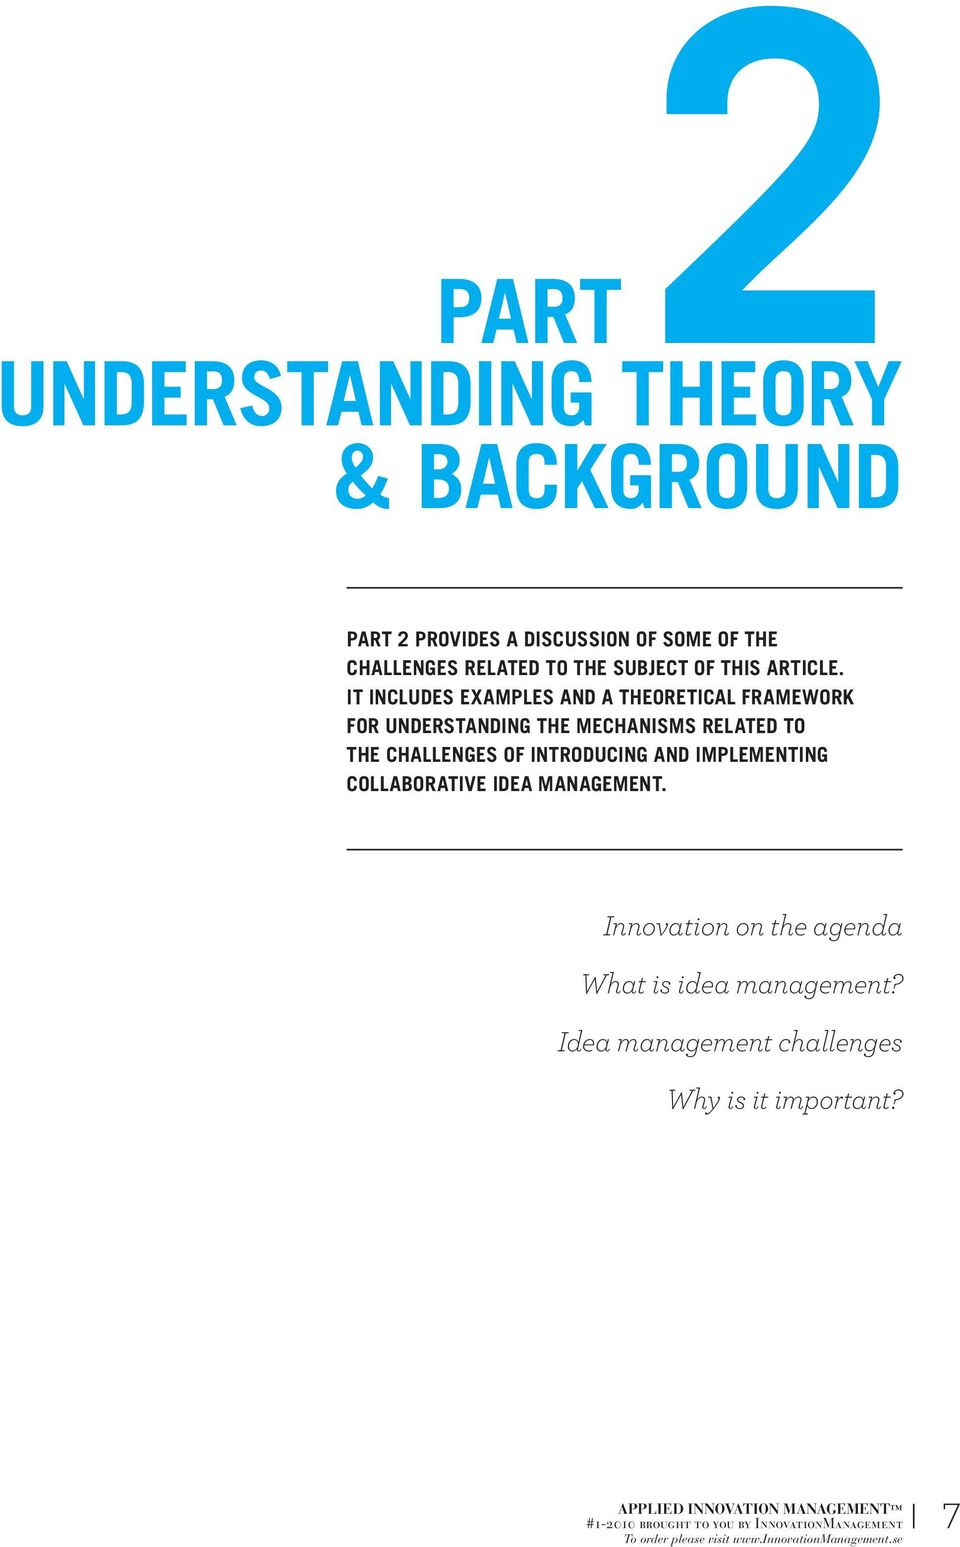 IT INCLUDES EXAMPLES AND A THEORETICAL FRAMEWORK FOR UNDERSTANDING THE MECHANISMS RELATED TO THE